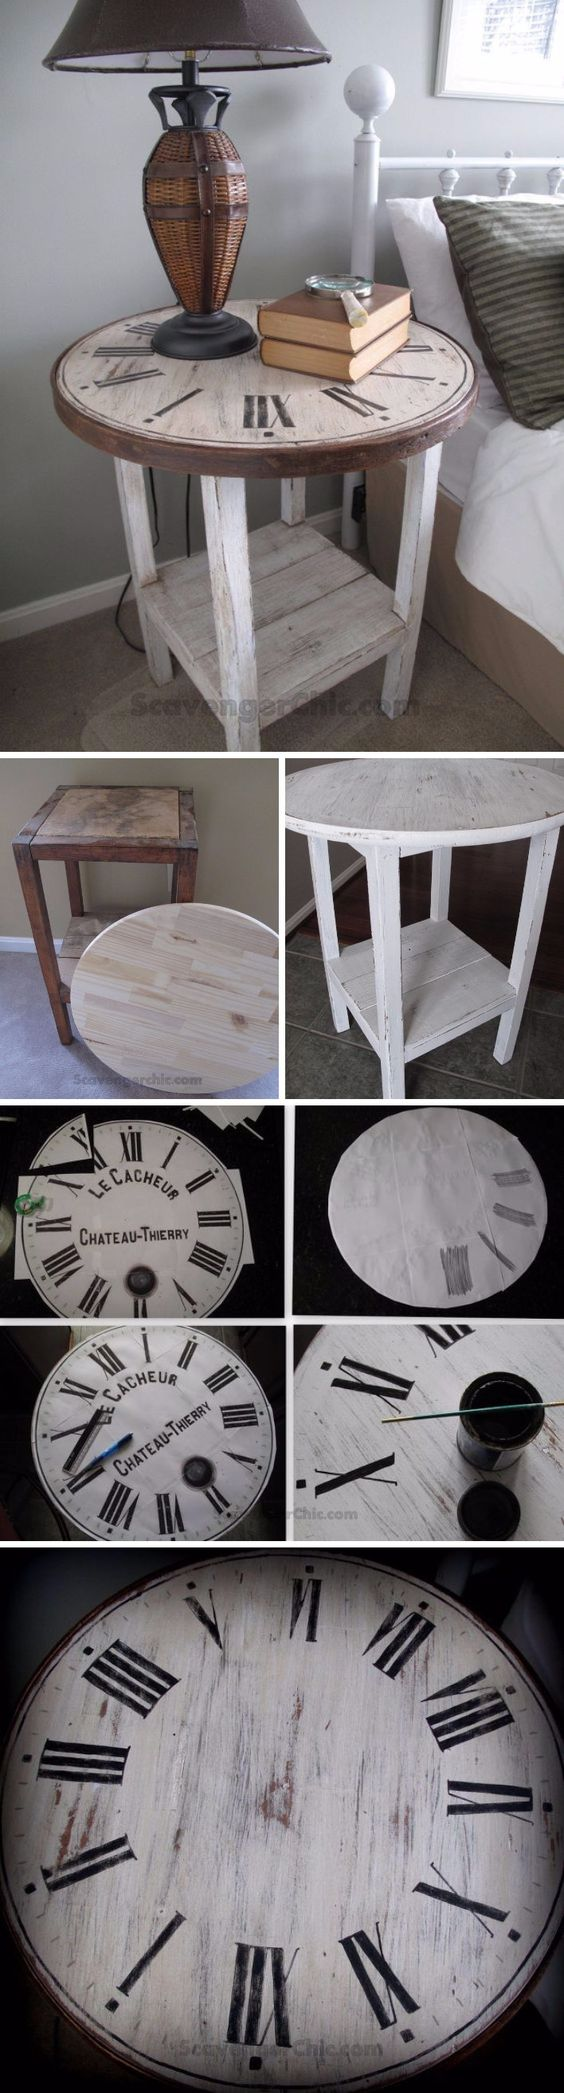 DIY Vintage Clock Table from a Flea Market Find.